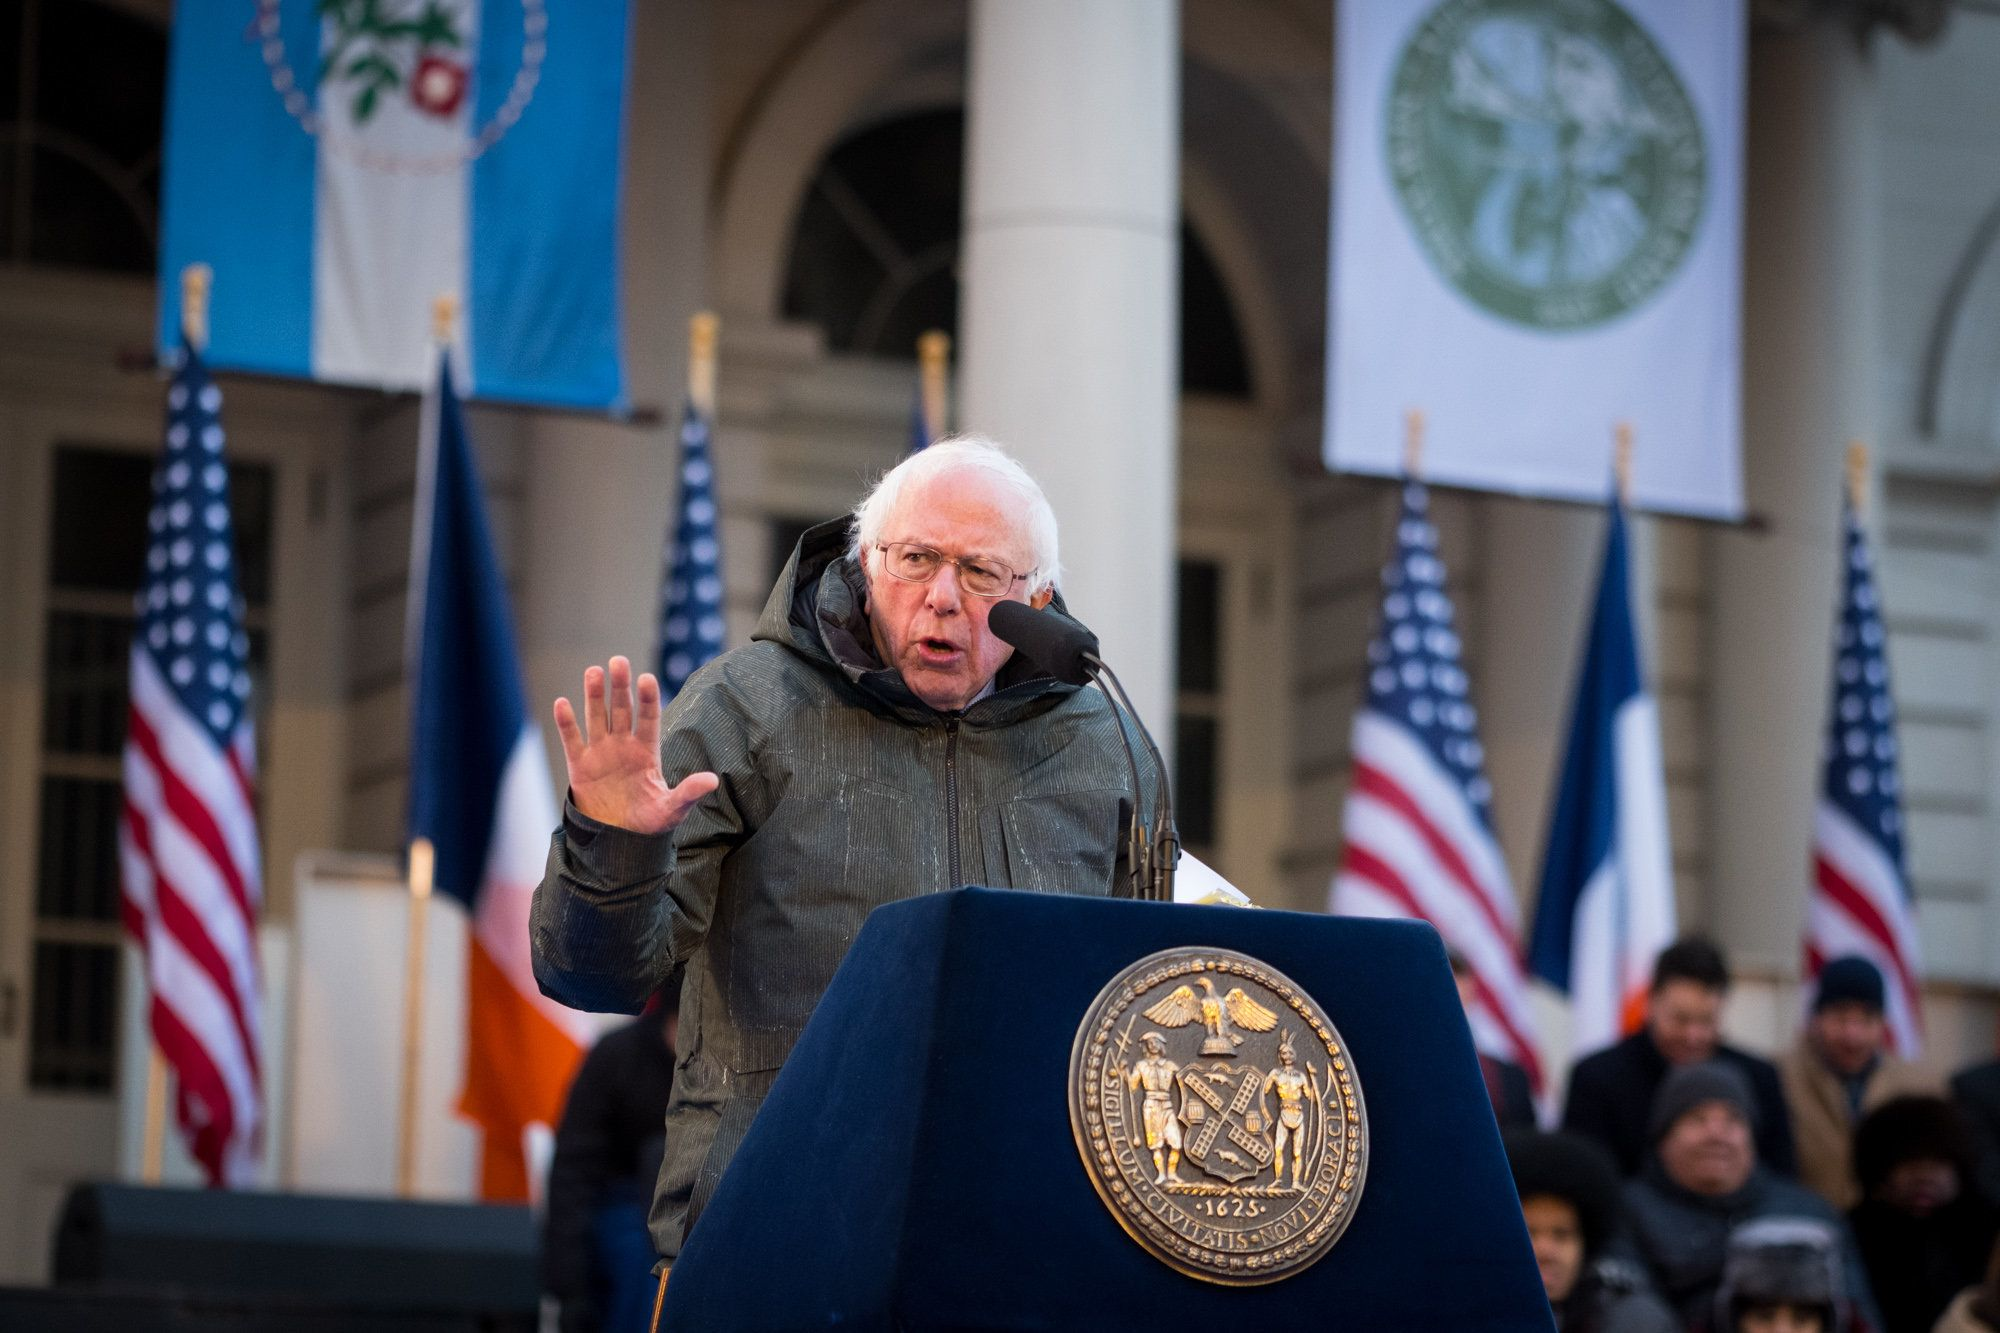 New York City Mayor Bill de Blasio is sworn in by United States Senator Bernie Sanders at the City of New York 2018 Inaugural Ceremonies on January 1, 2018 on the steps of City Hall. Edwin J. Torres/Mayoral Photography Office.